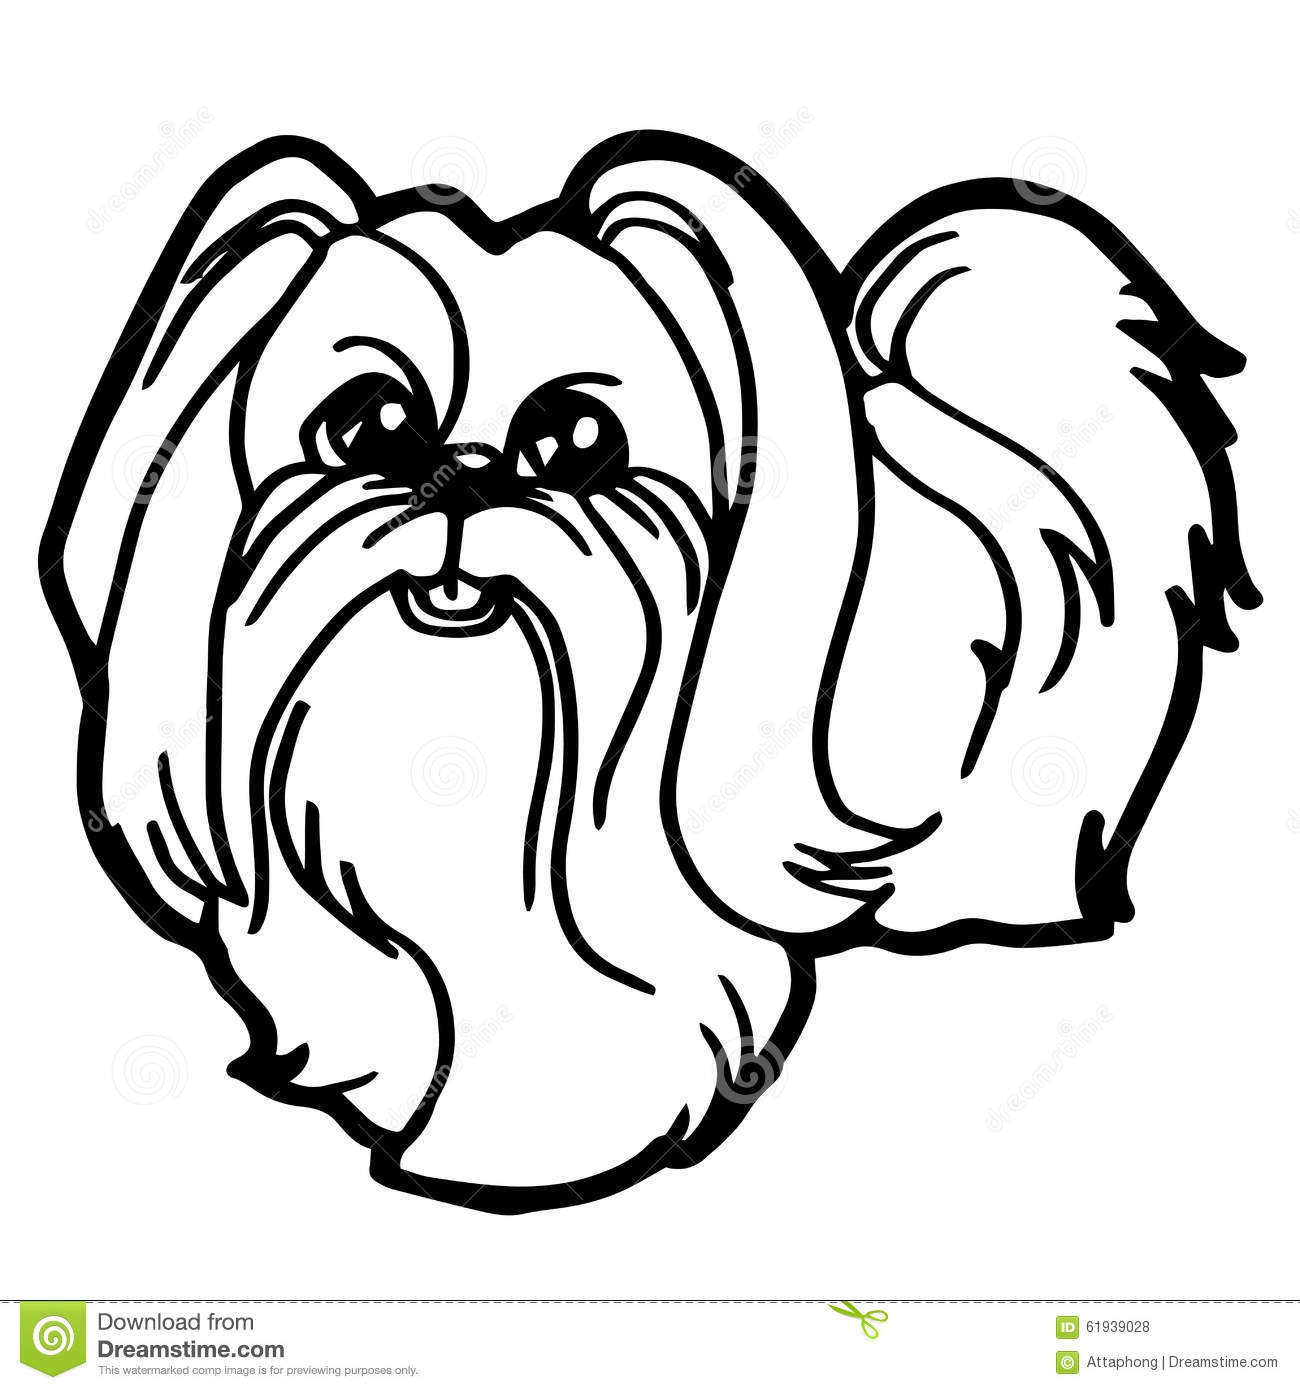 Cartoon Illustration Of Funny Dog For Coloring Book Stock Vector